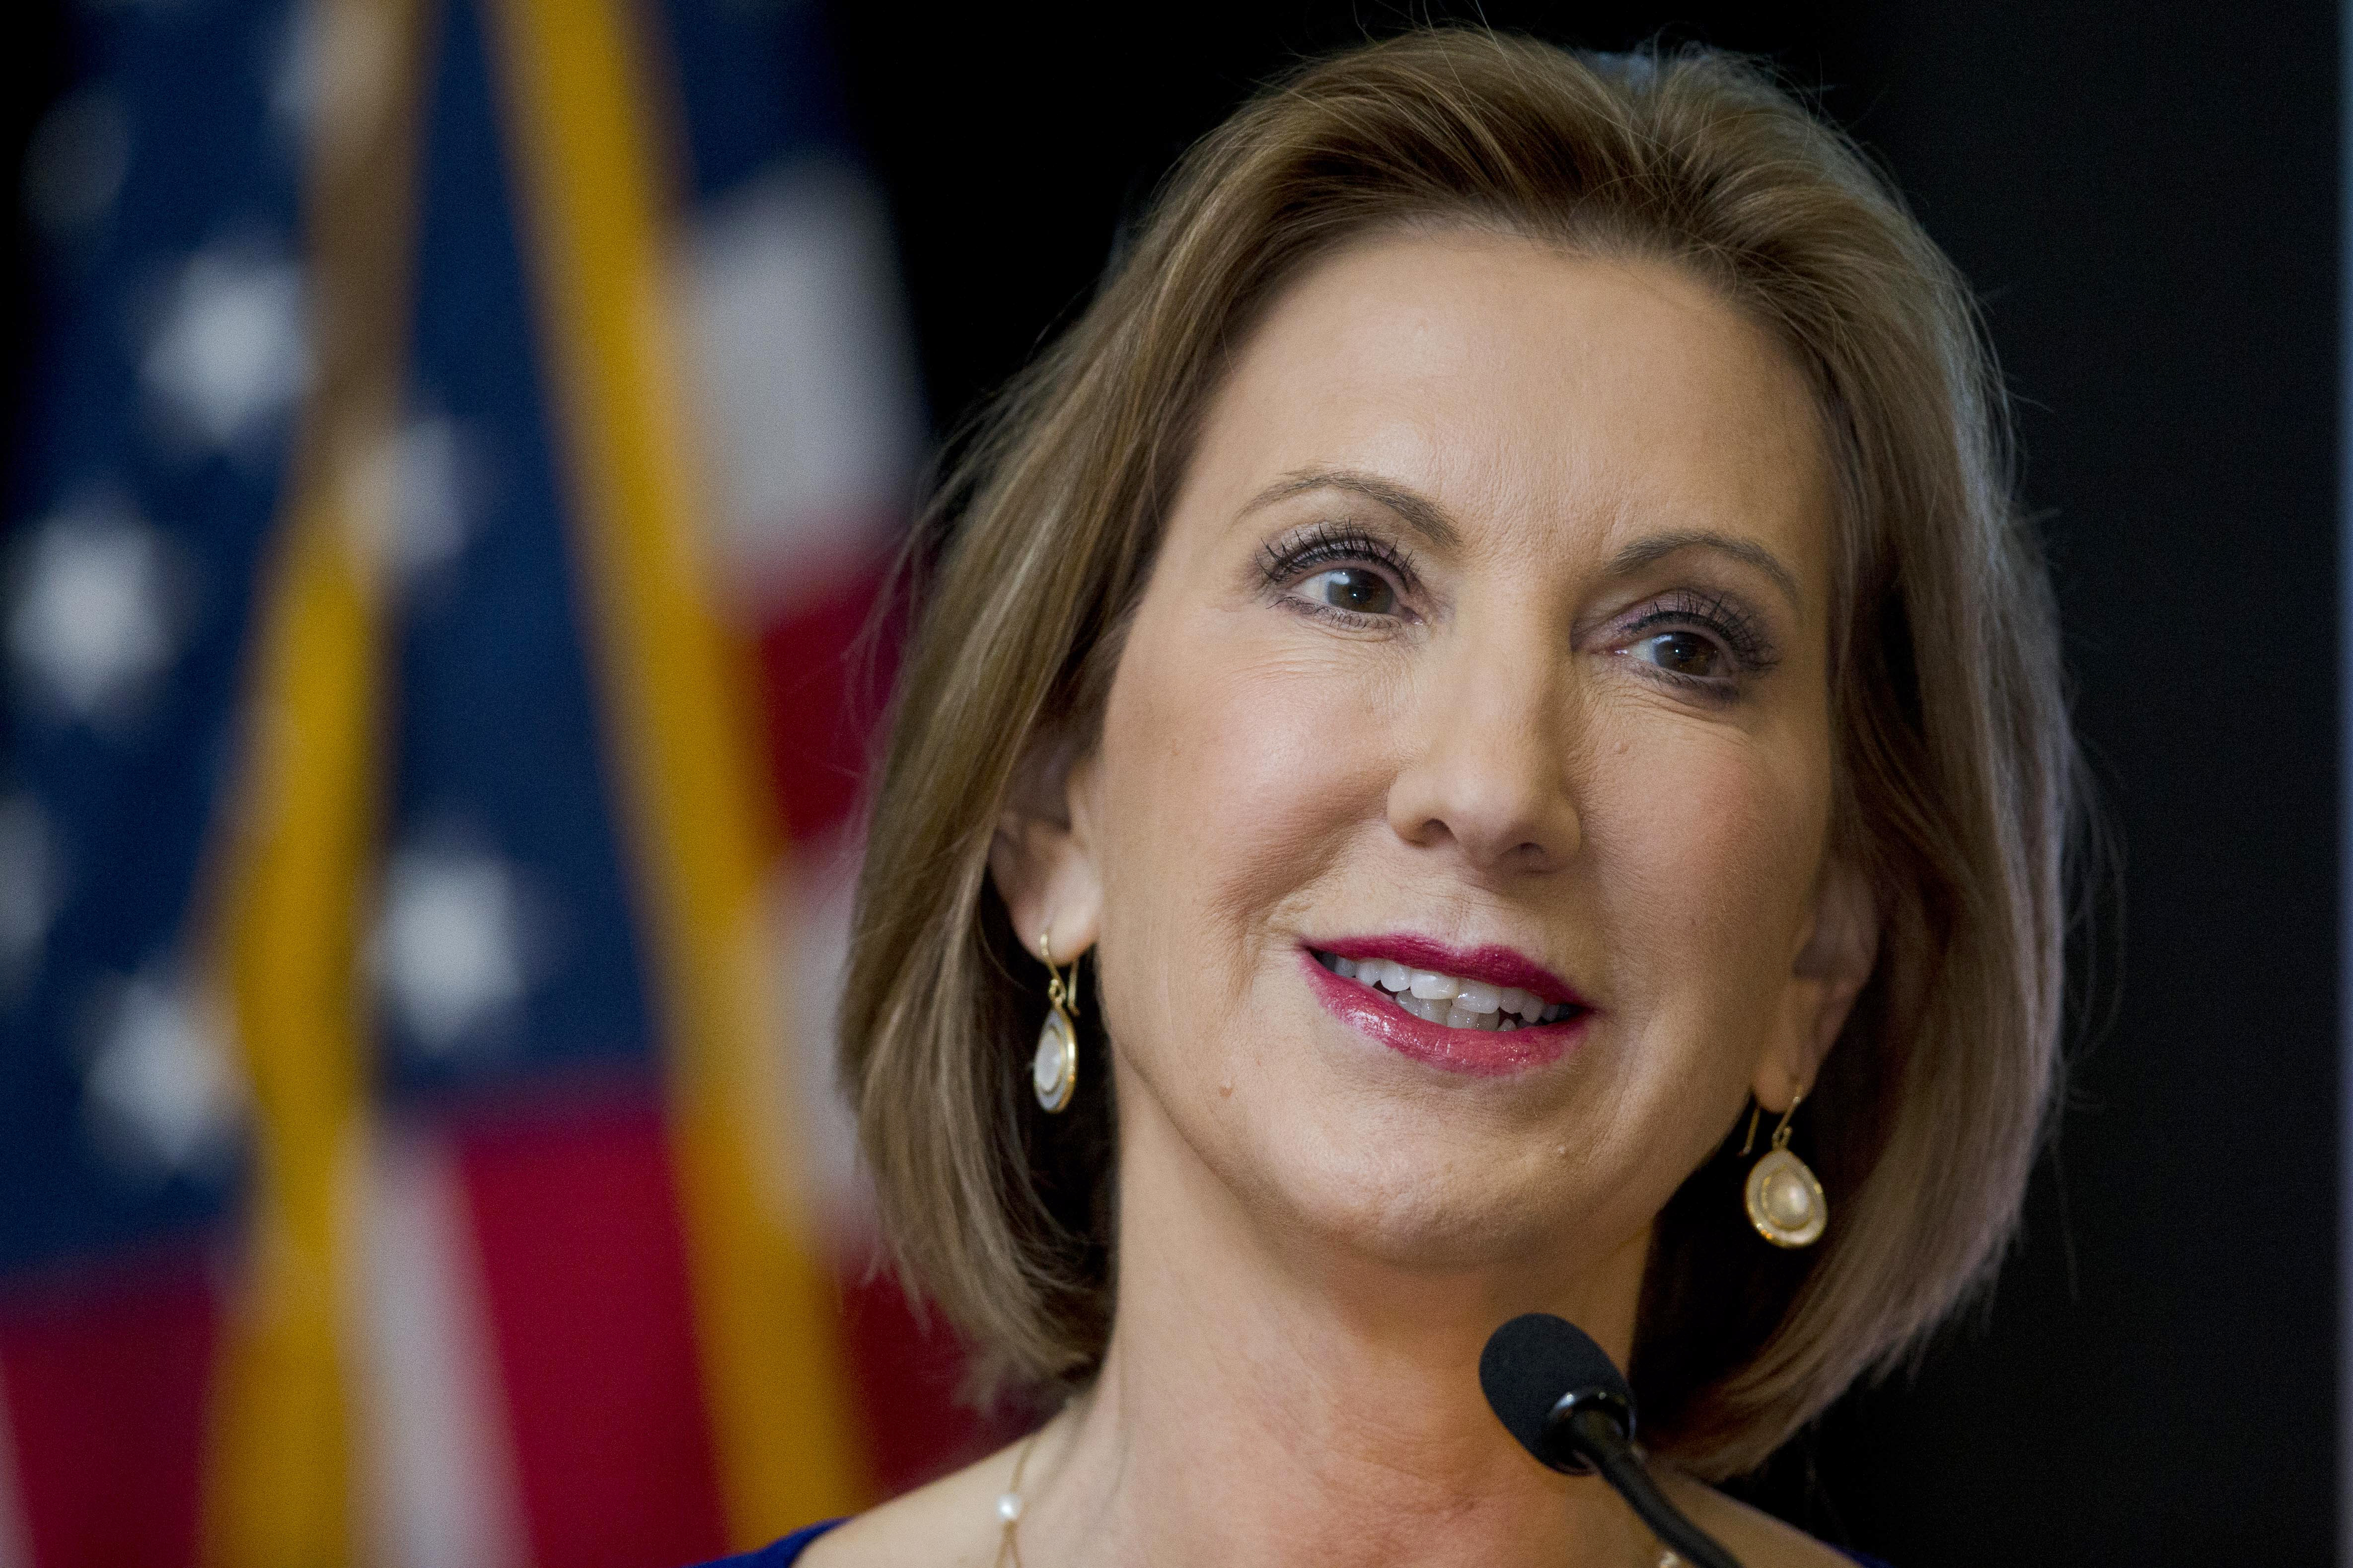 Poll: Carly Fiorina's supporters have the best spelling and grammar